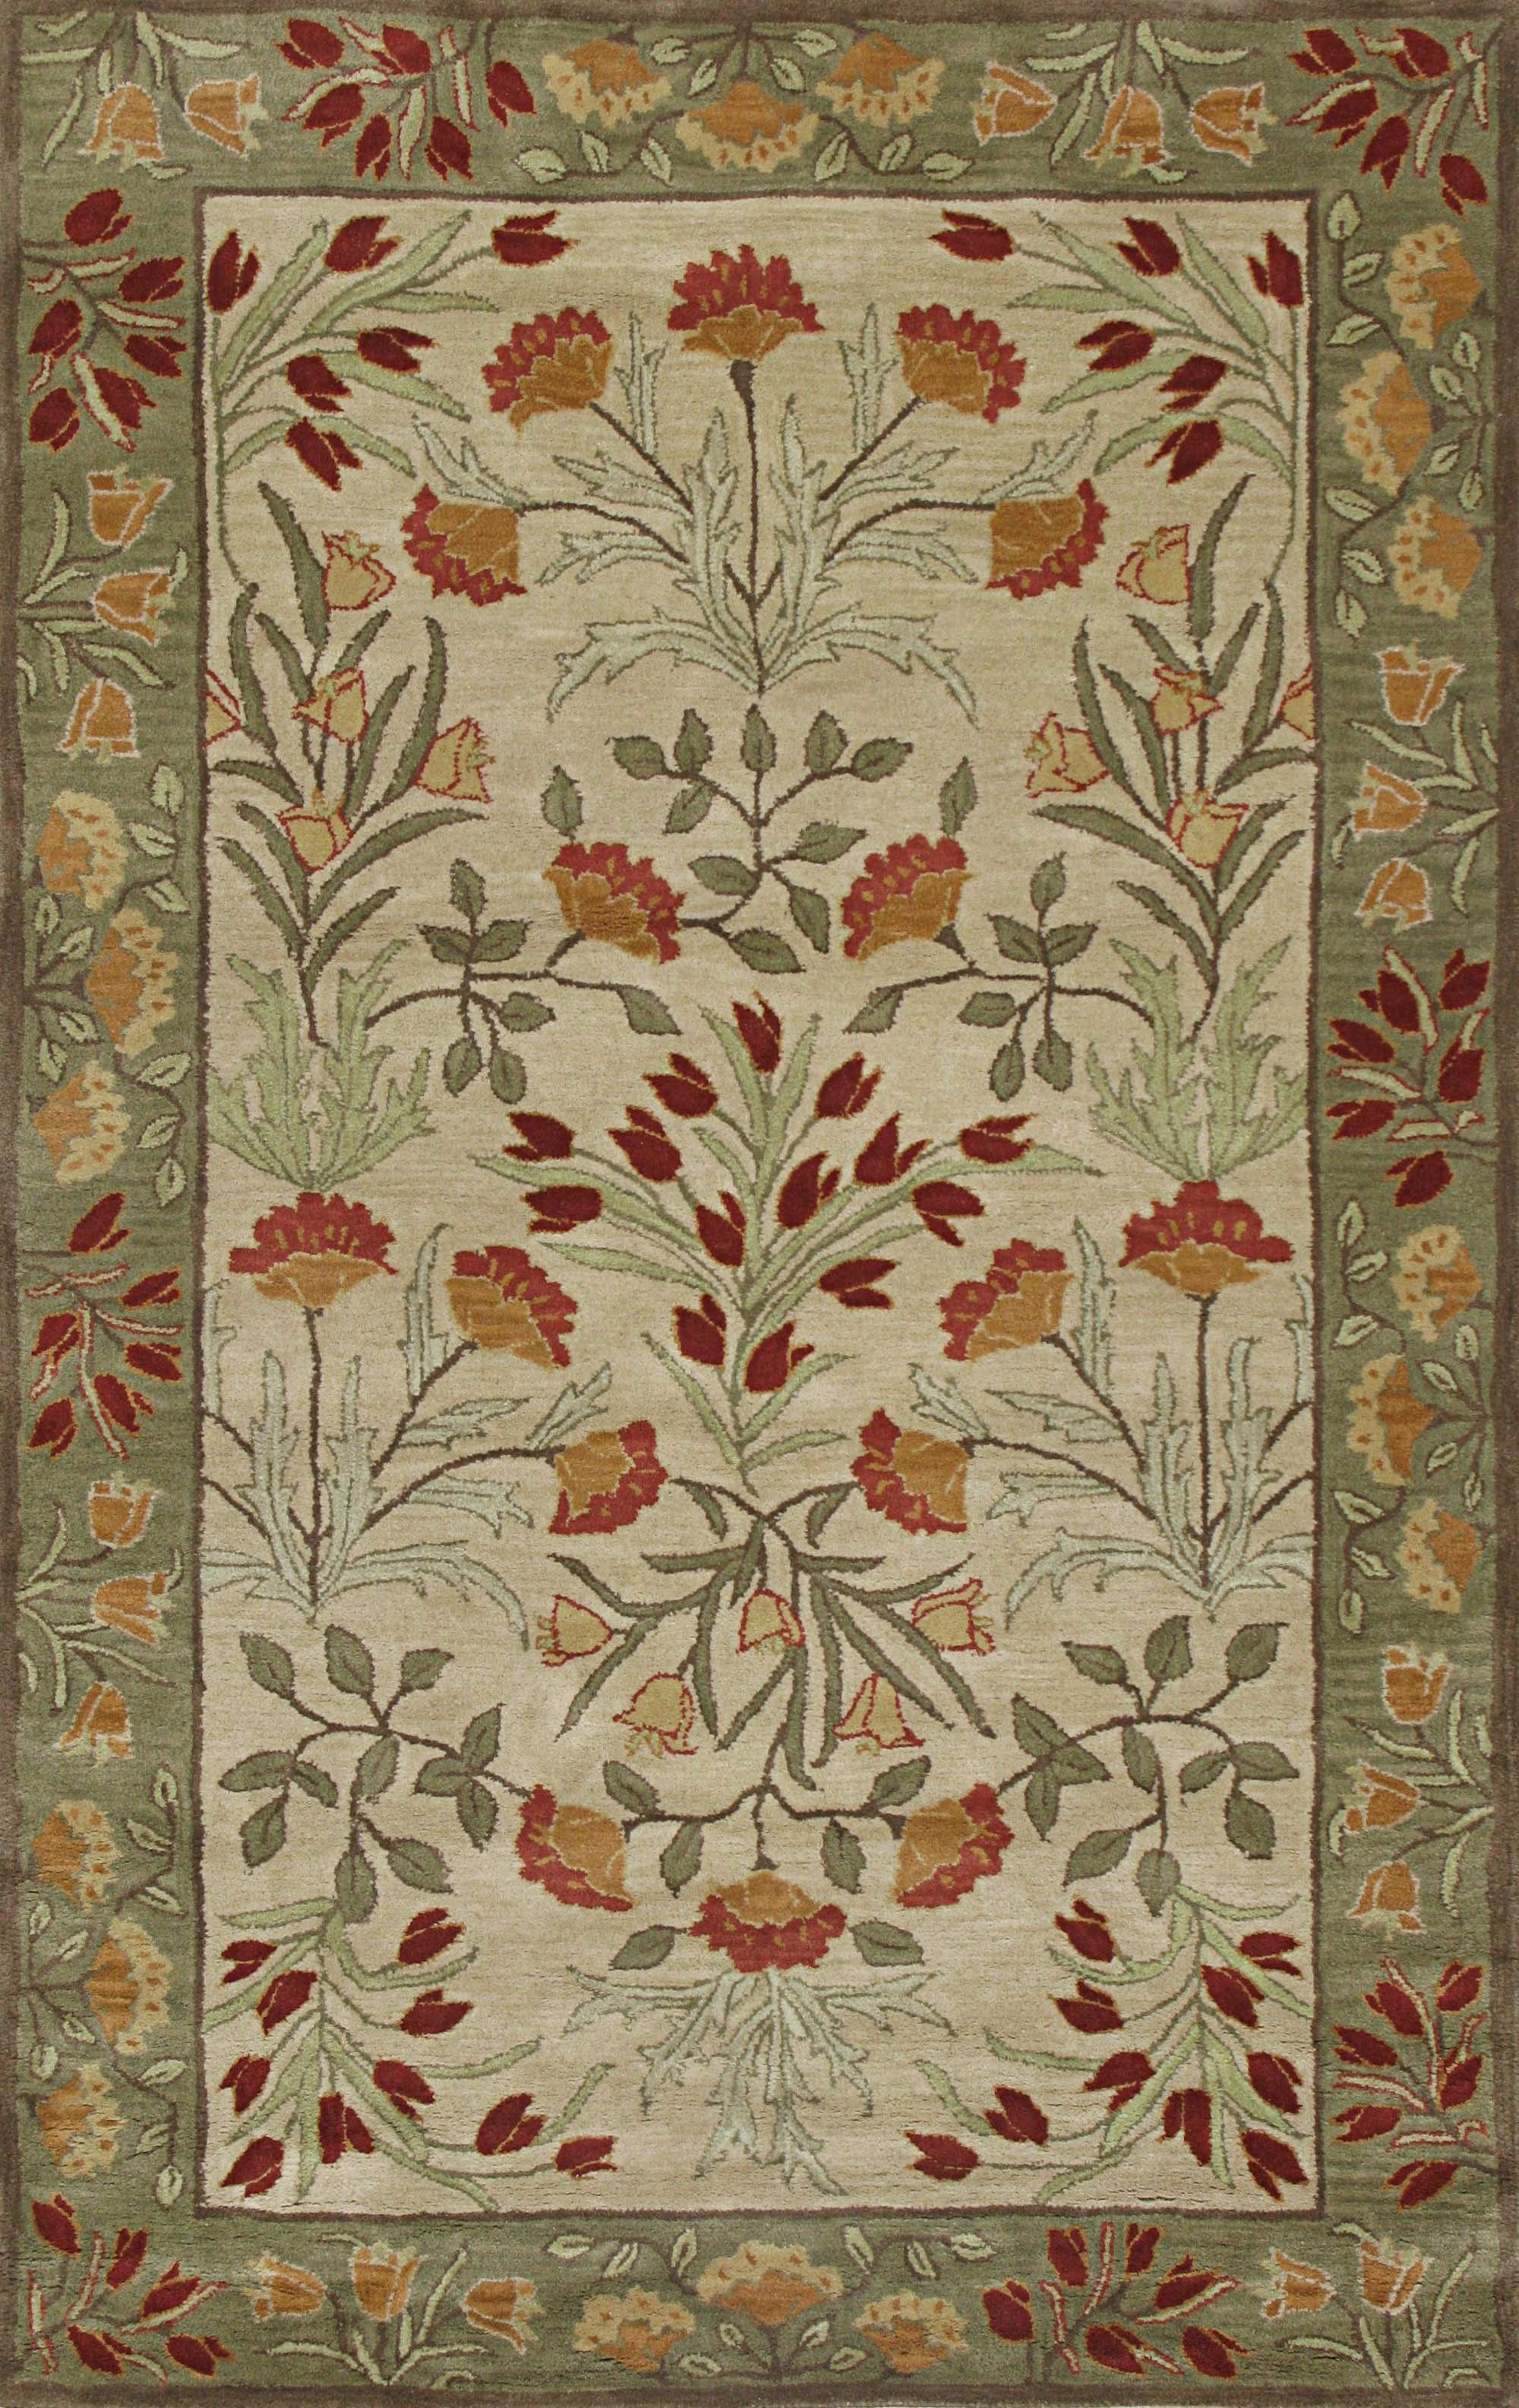 Rugsville Suzani Beige Green Wool Rug A Tree Design With